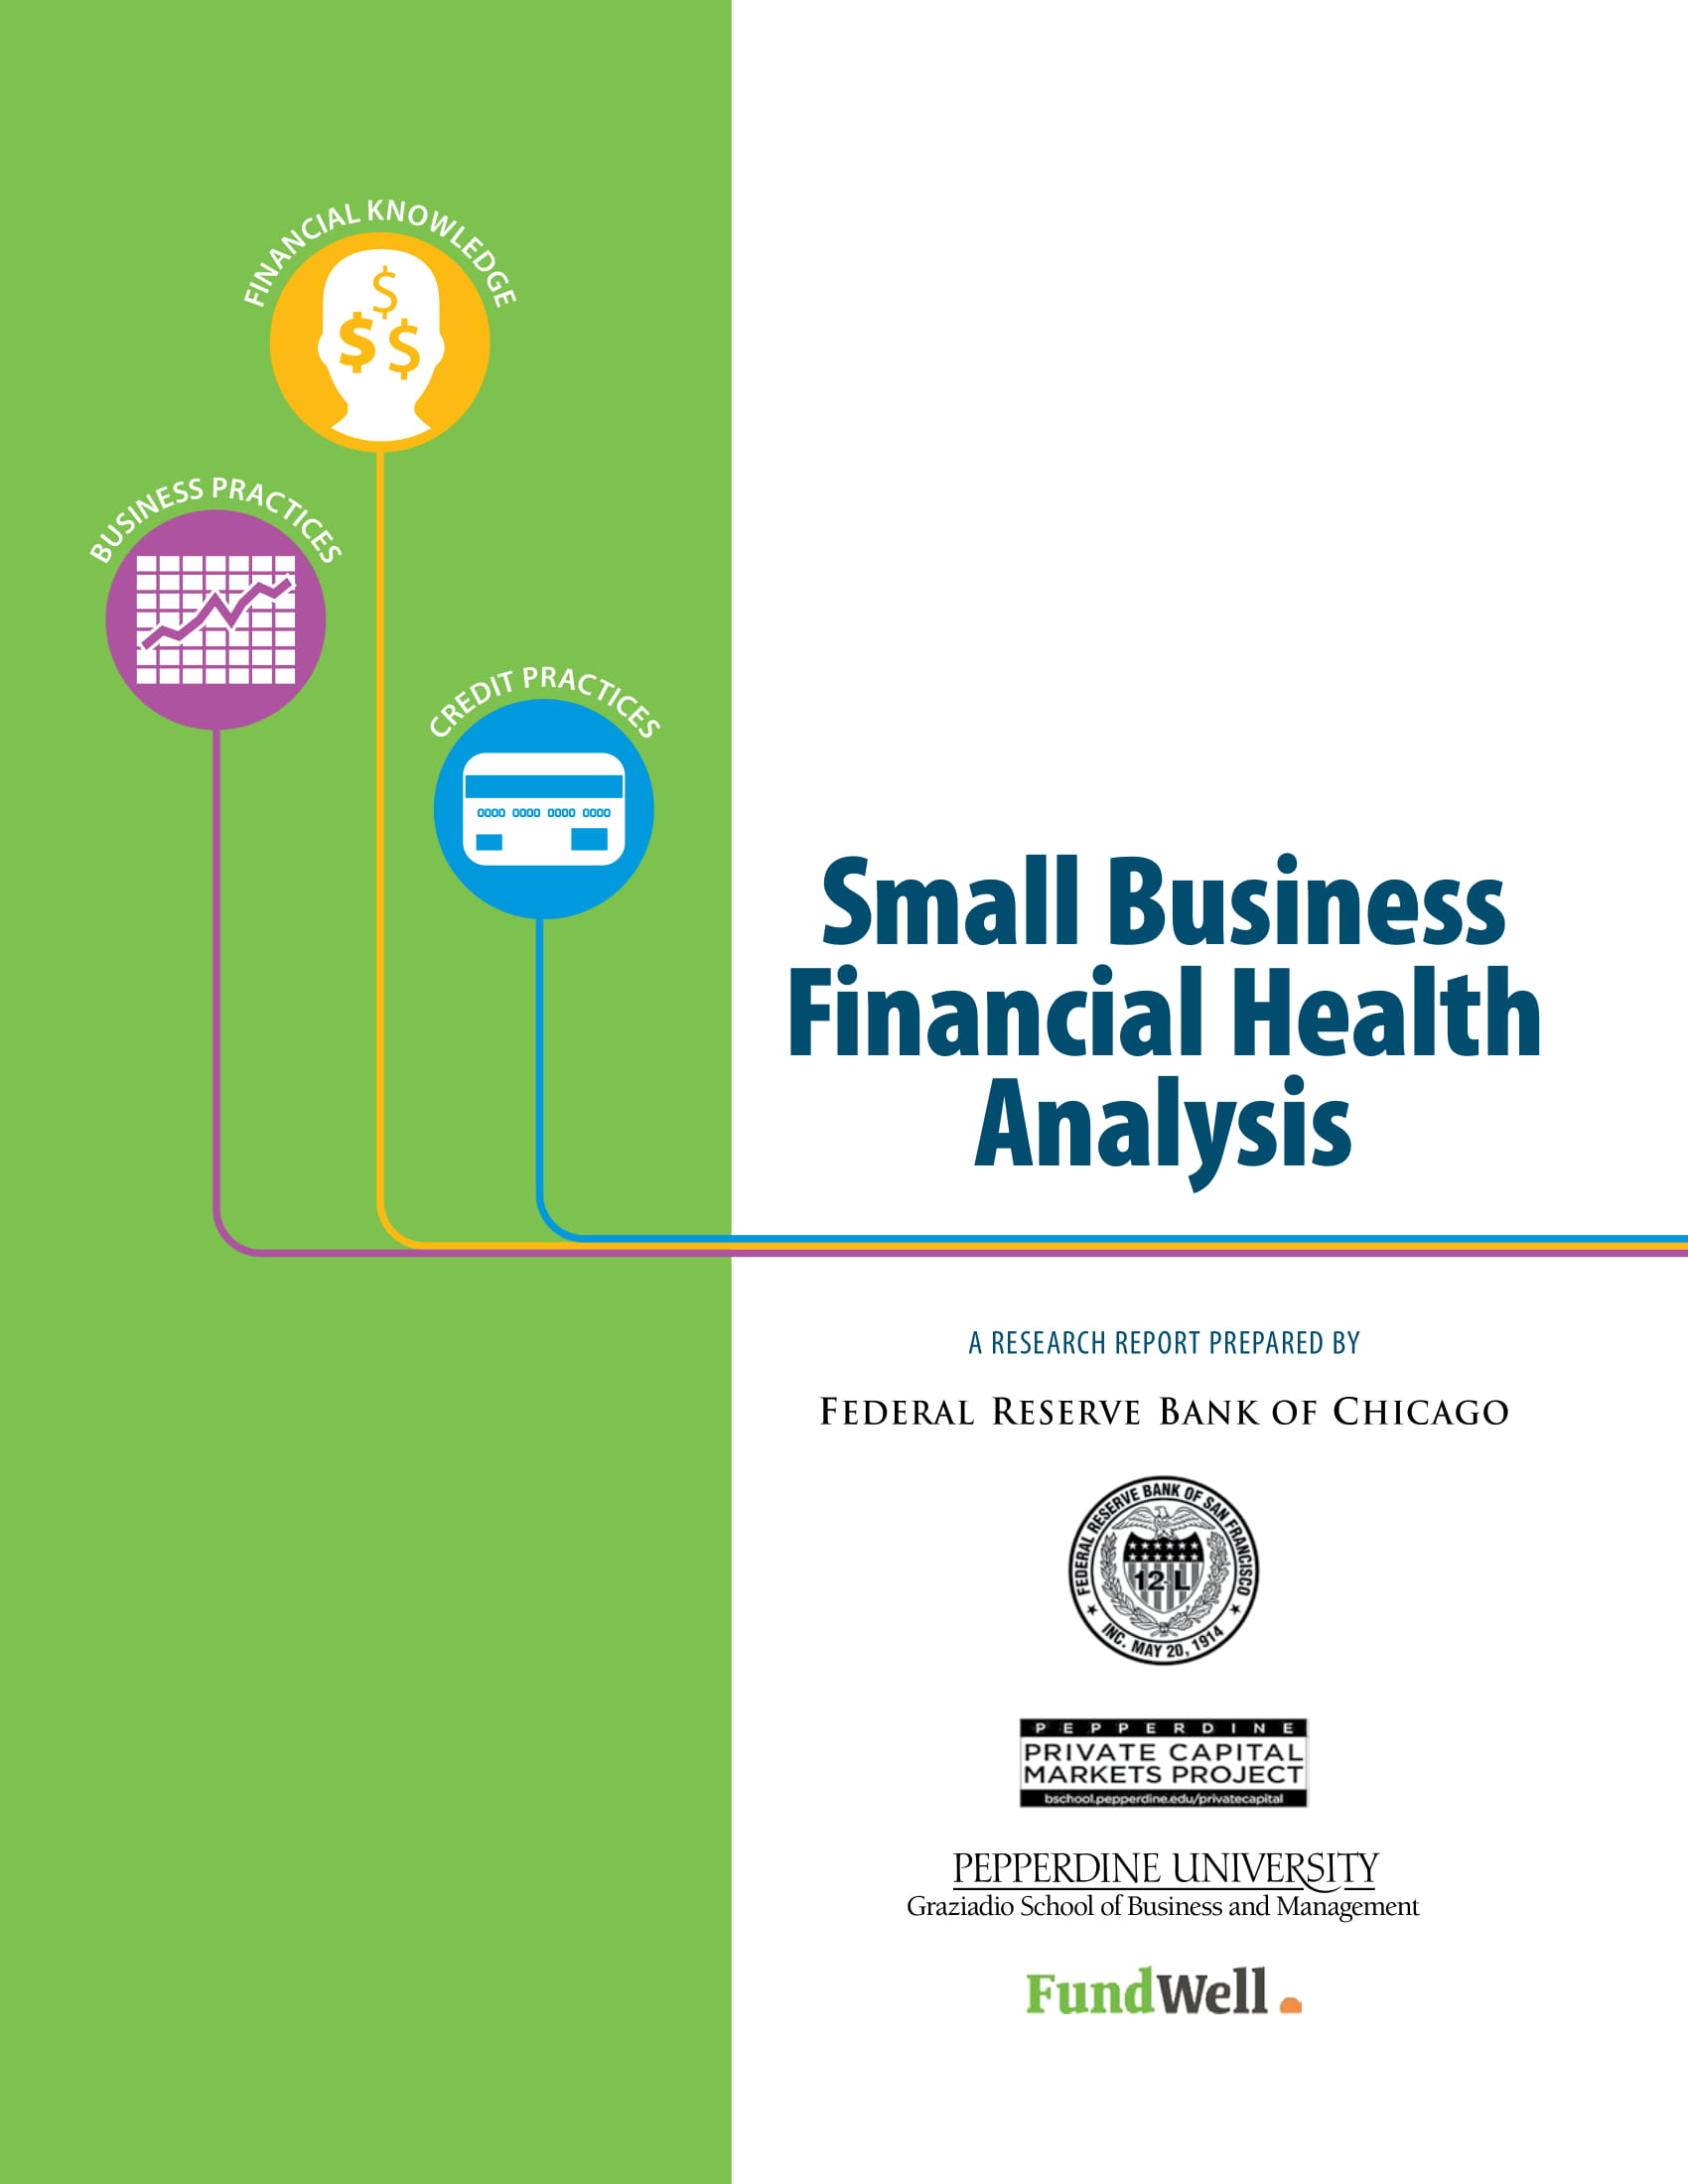 small business financial health analysis example 01